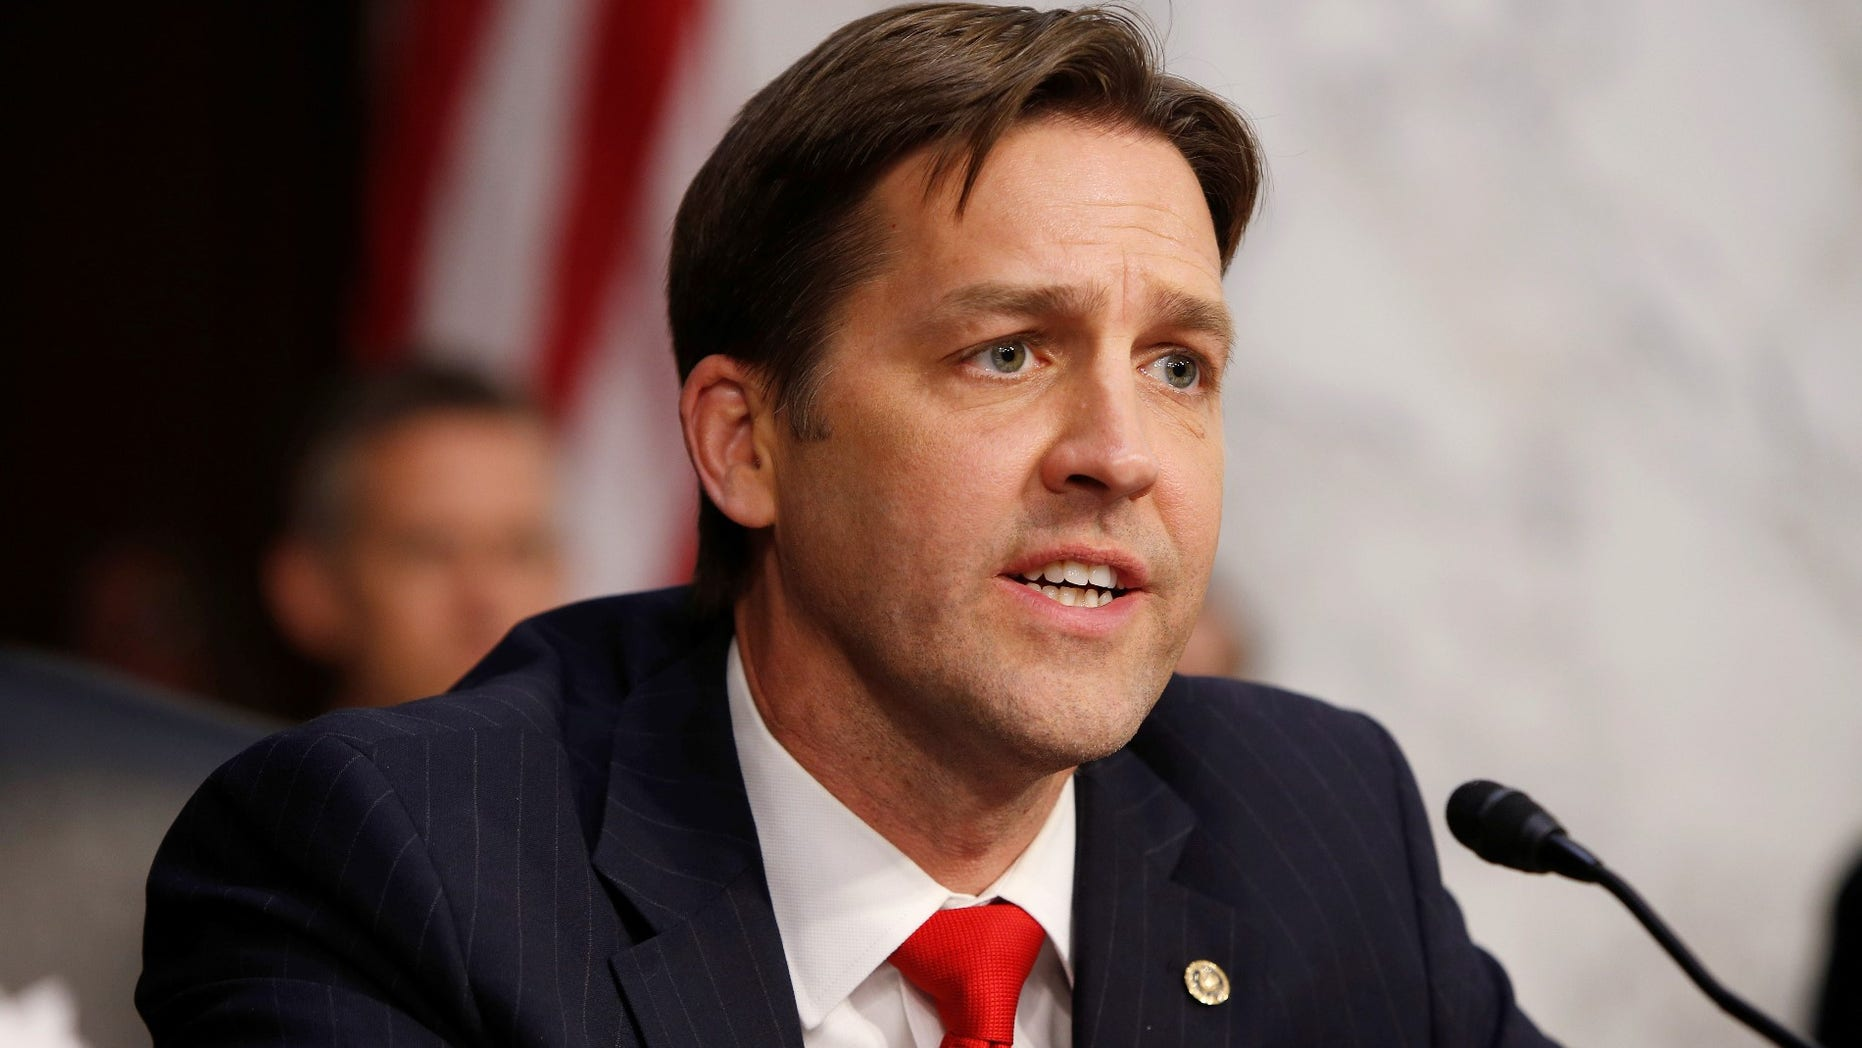 FILE -- Senator Ben Sasse (R-NE) questions Supreme Court nominee judge Neil Gorsuch during his Senate Judiciary Committee confirmation hearing on Capitol Hill in Washington, U.S., March 21, 2017.